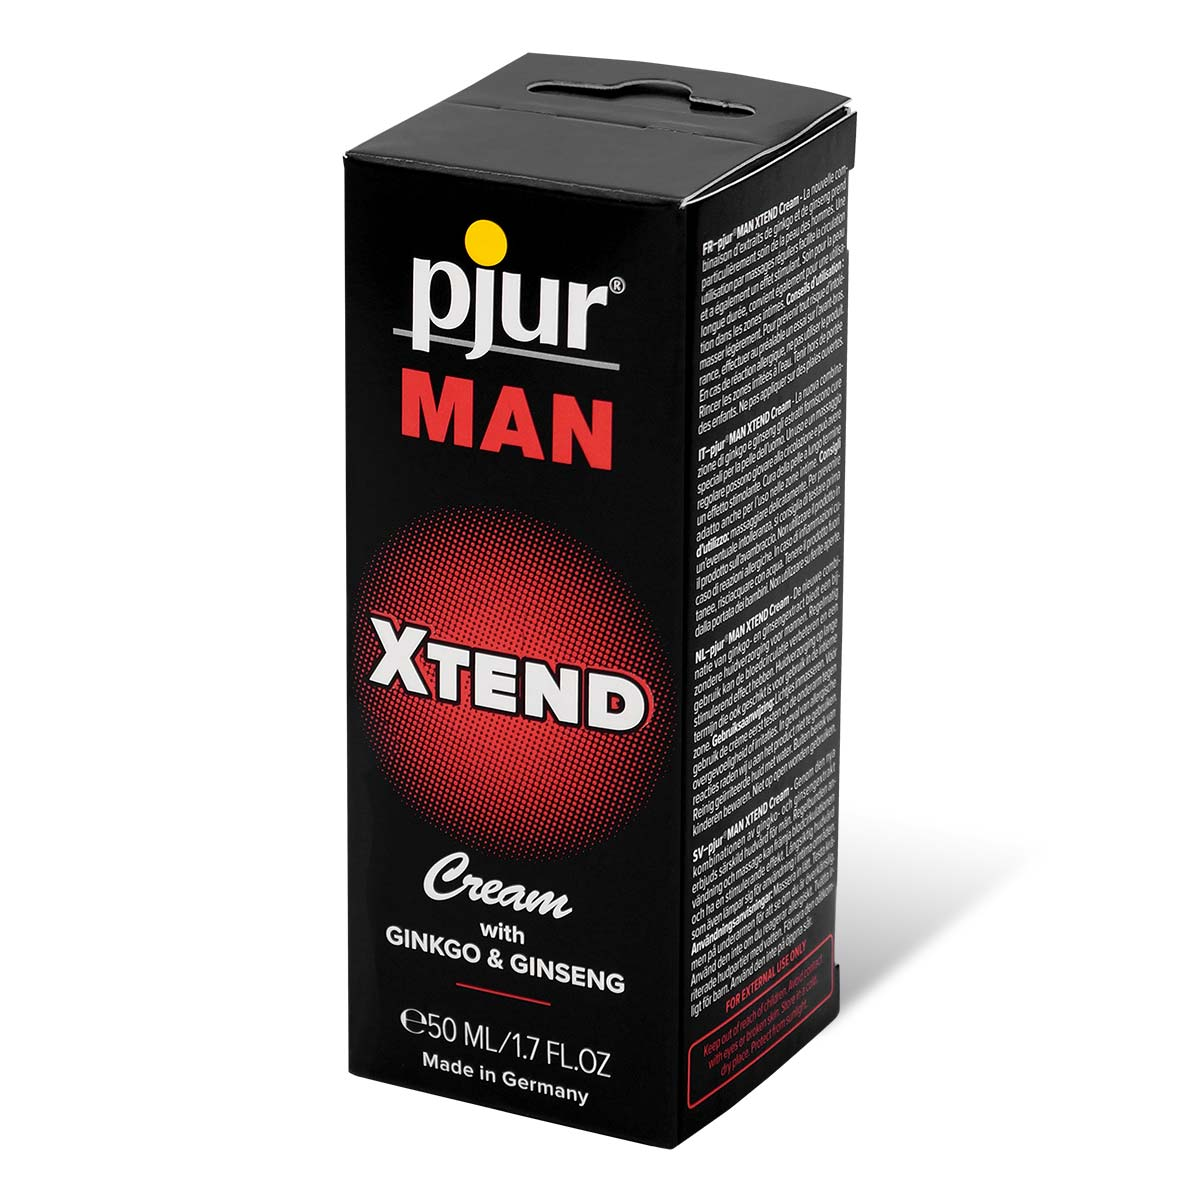 pjur MAN XTEND Cream 50ml